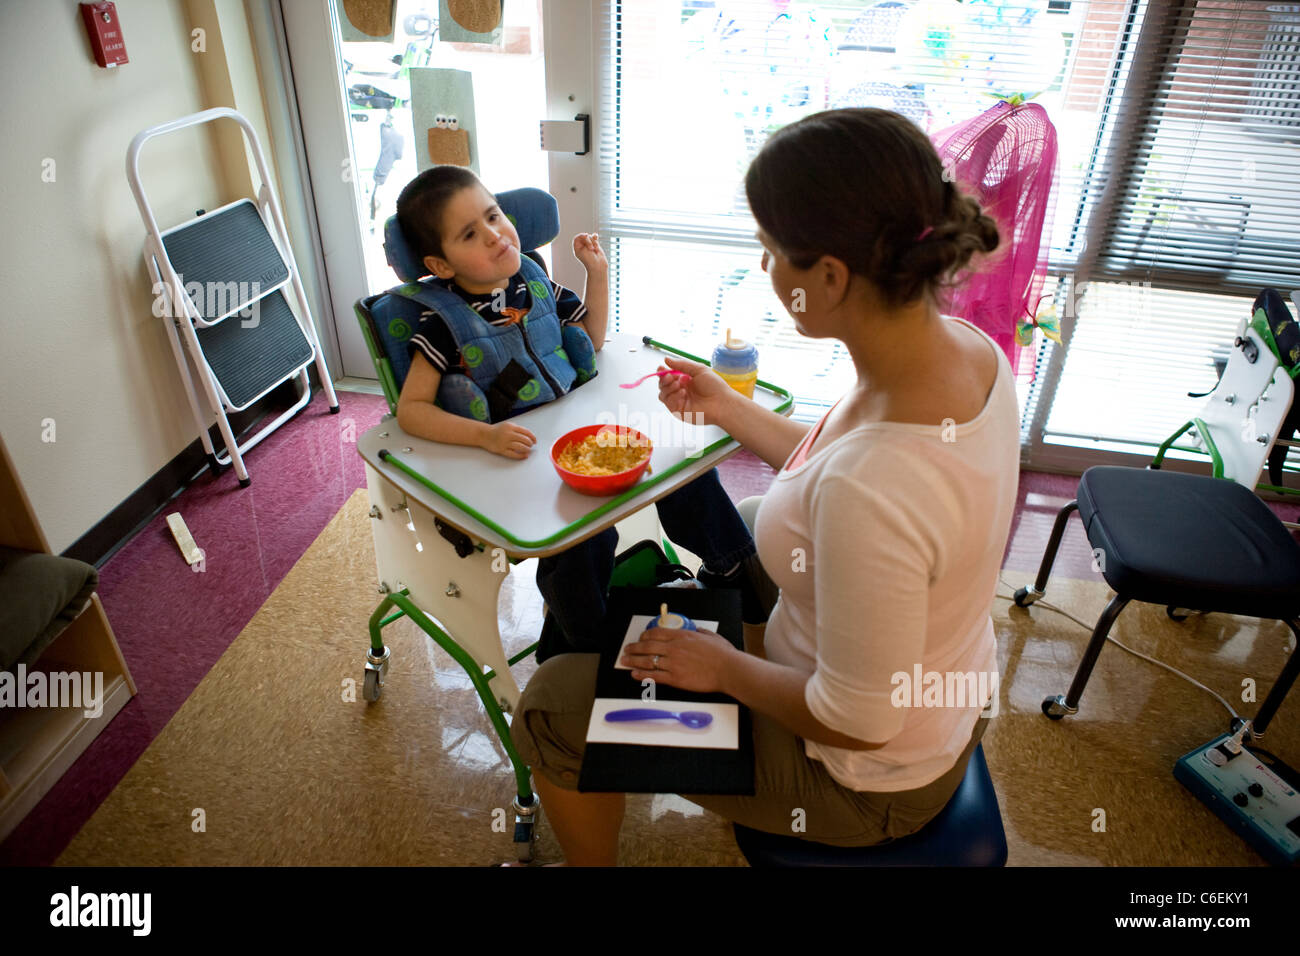 Speech therapist working with young boy on making a request for more food using sign language. - Stock Image